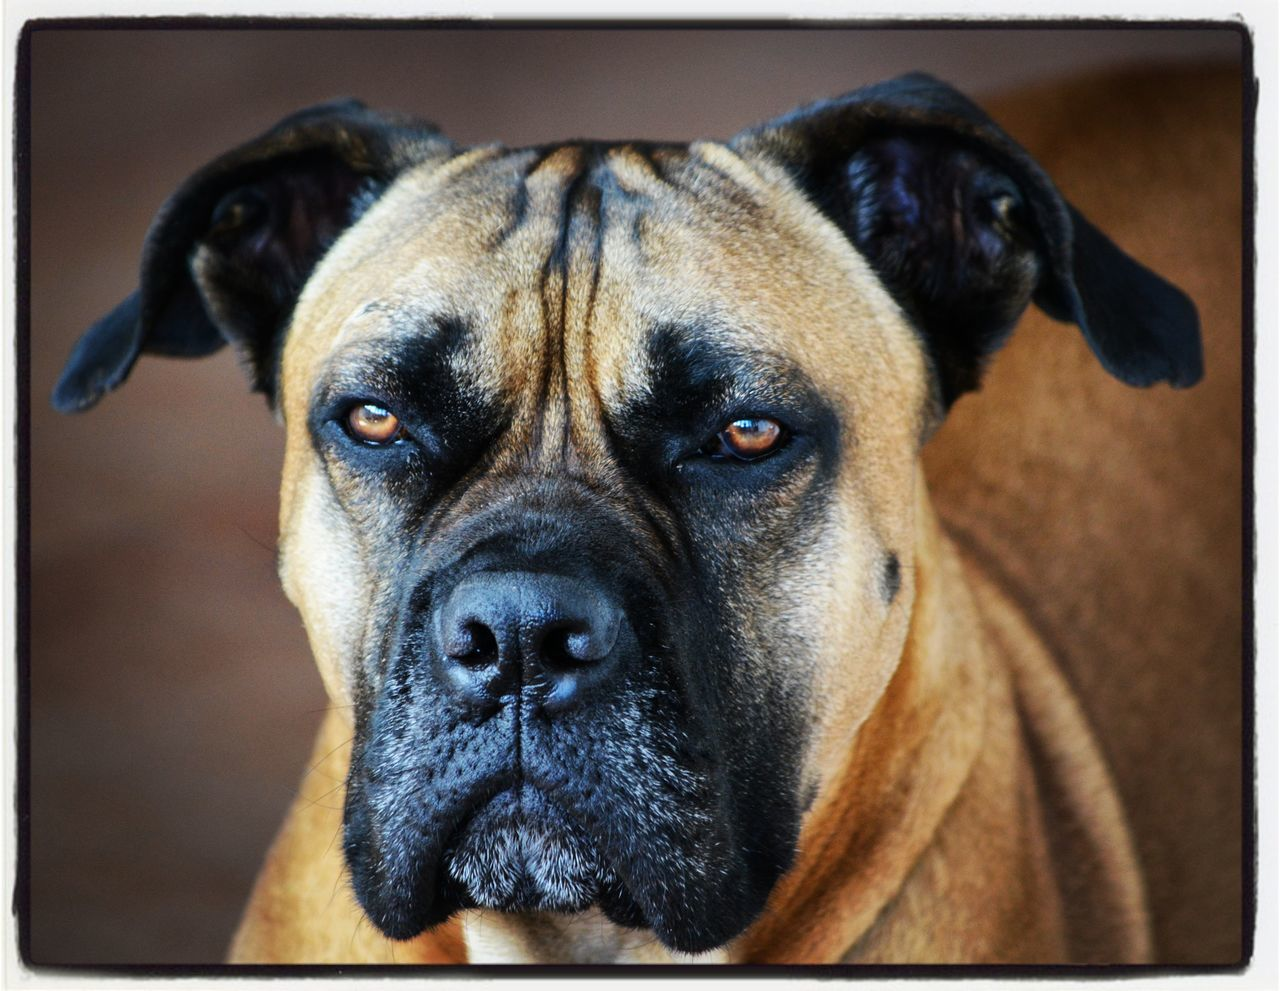 simply Bull Dog Pets Looking At Camera Portrait One Animal Animal Themes Indoors  Domestic Animals Close-up No People Bullmastiff EyeEm Masterclass EyeEm Market © EyeEm Best Shots EyeEmBestPics EyeEmBestEdits Nikkor 55-300mm Lens Nikon D5200